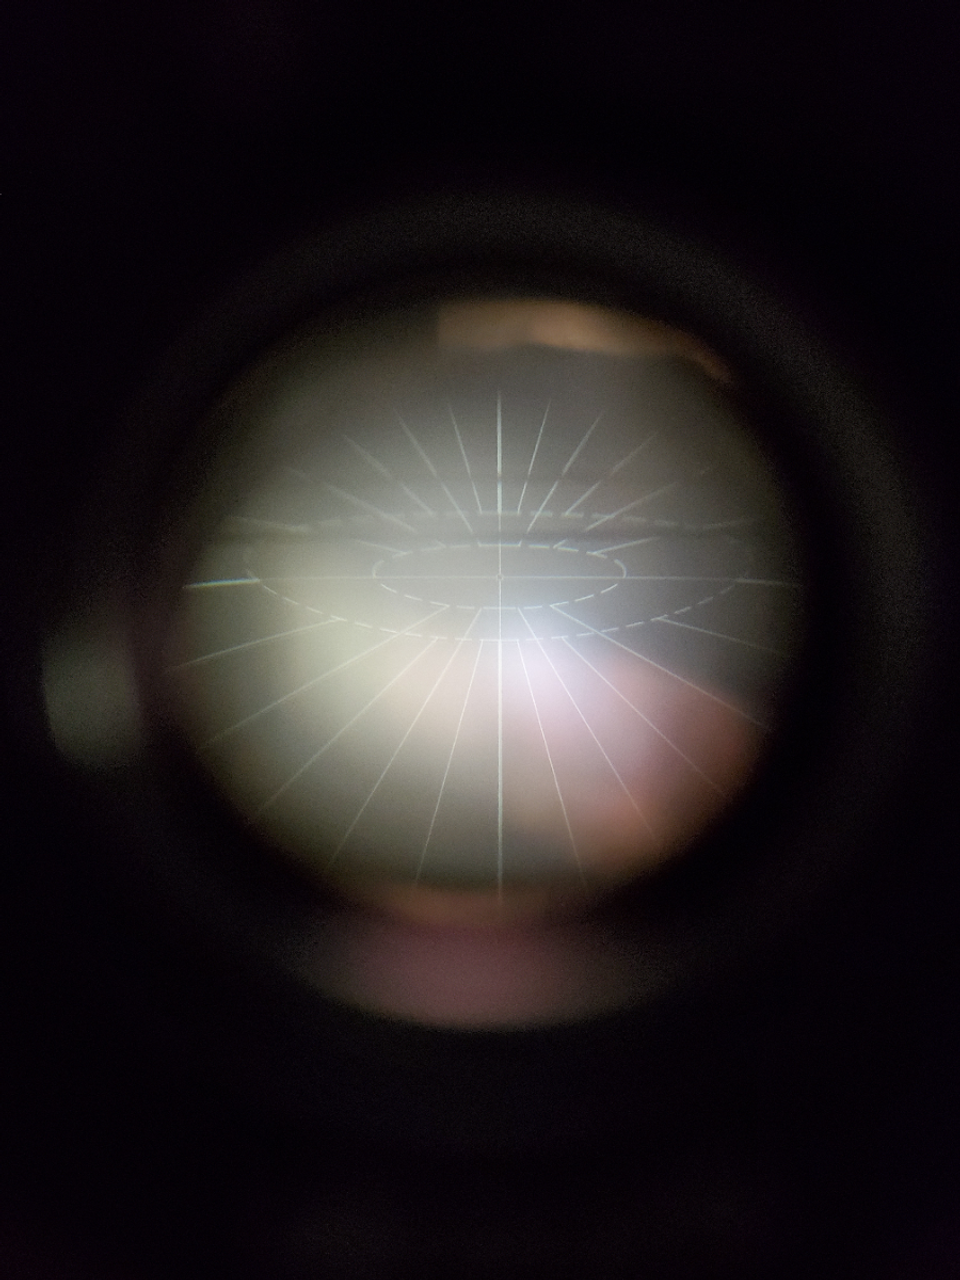 Optic's reticle. Reticle is illuminated in green when connected to an external power source.